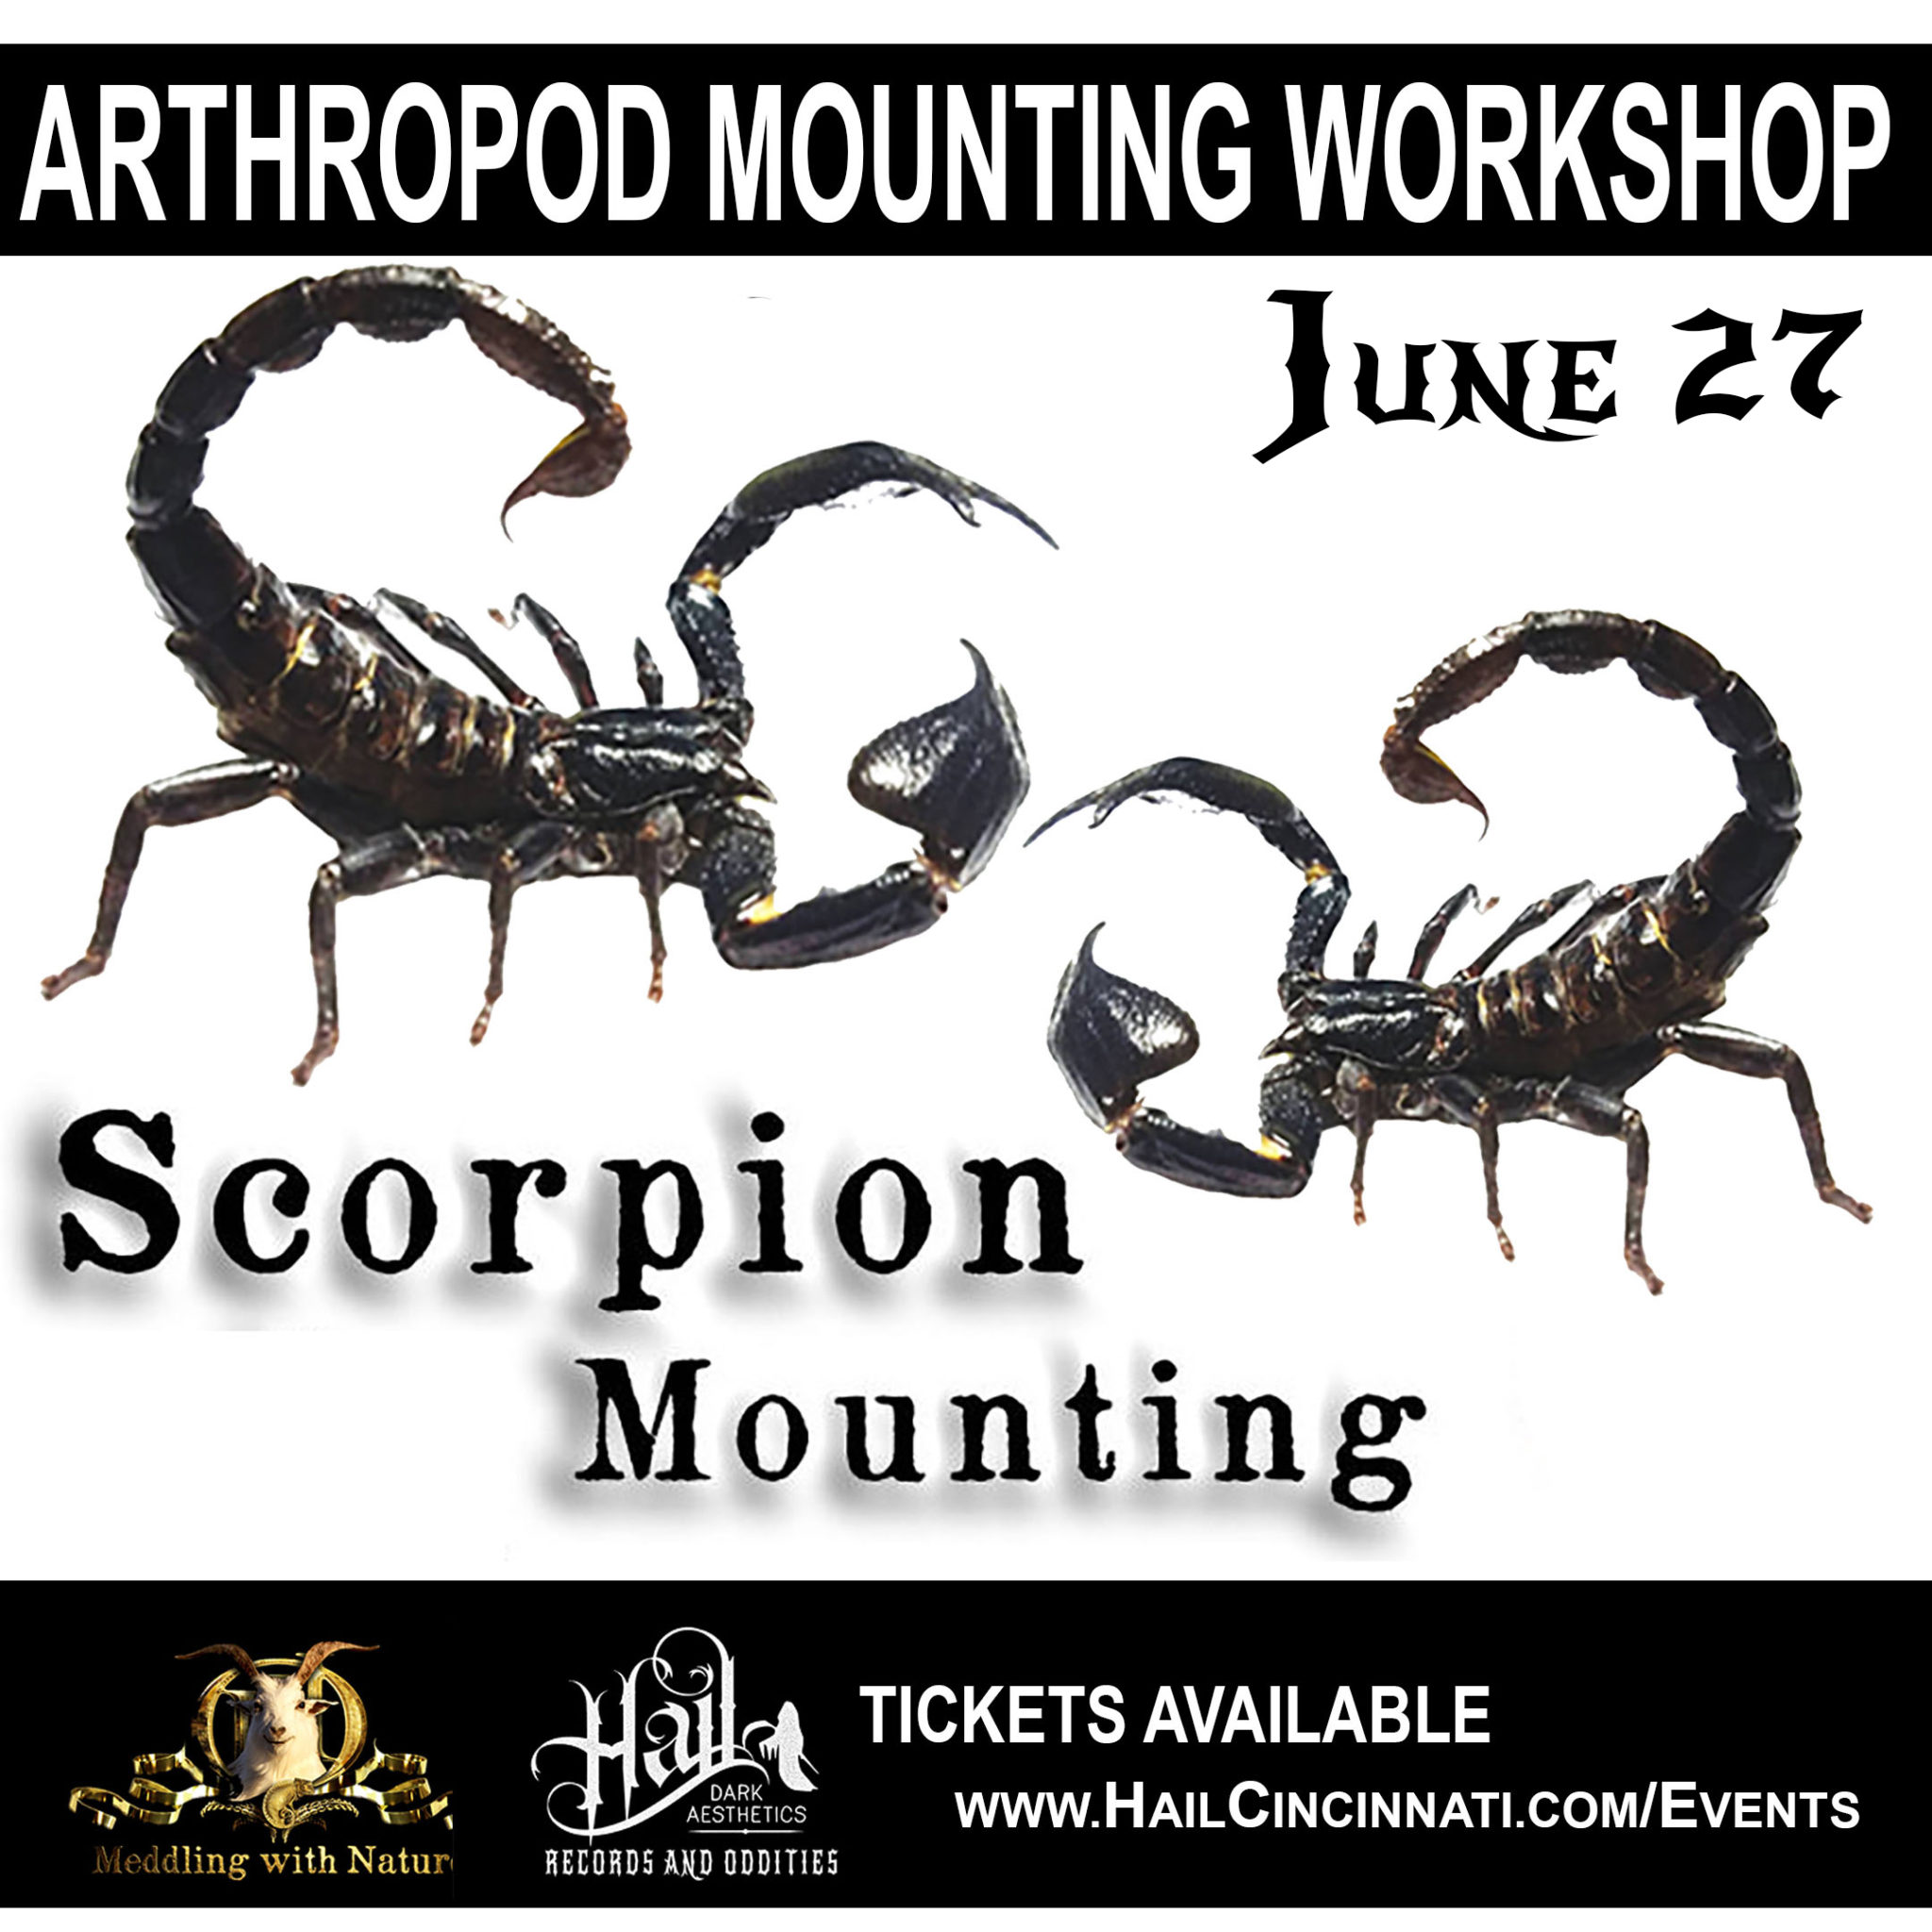 June 27, 2019 – Scorpion Mounting